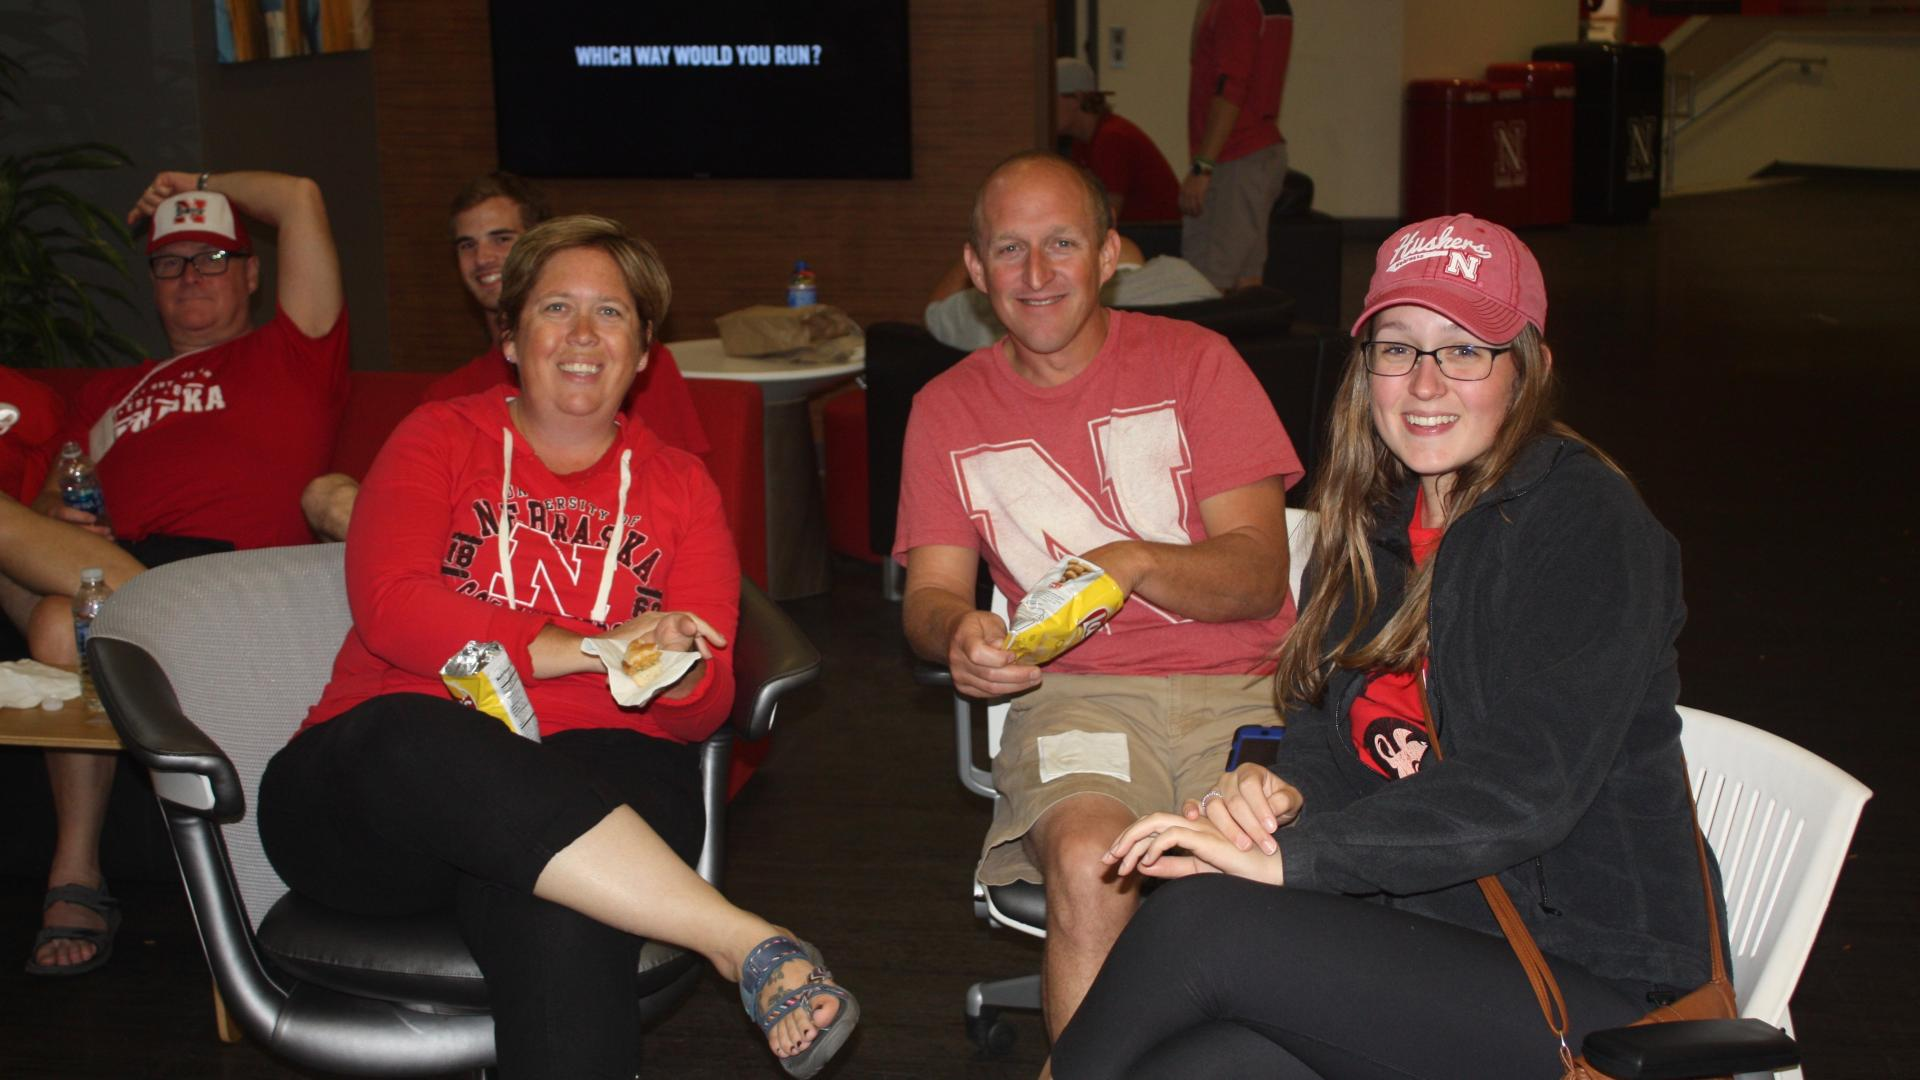 Family at Husker watch party for Family Weekend.